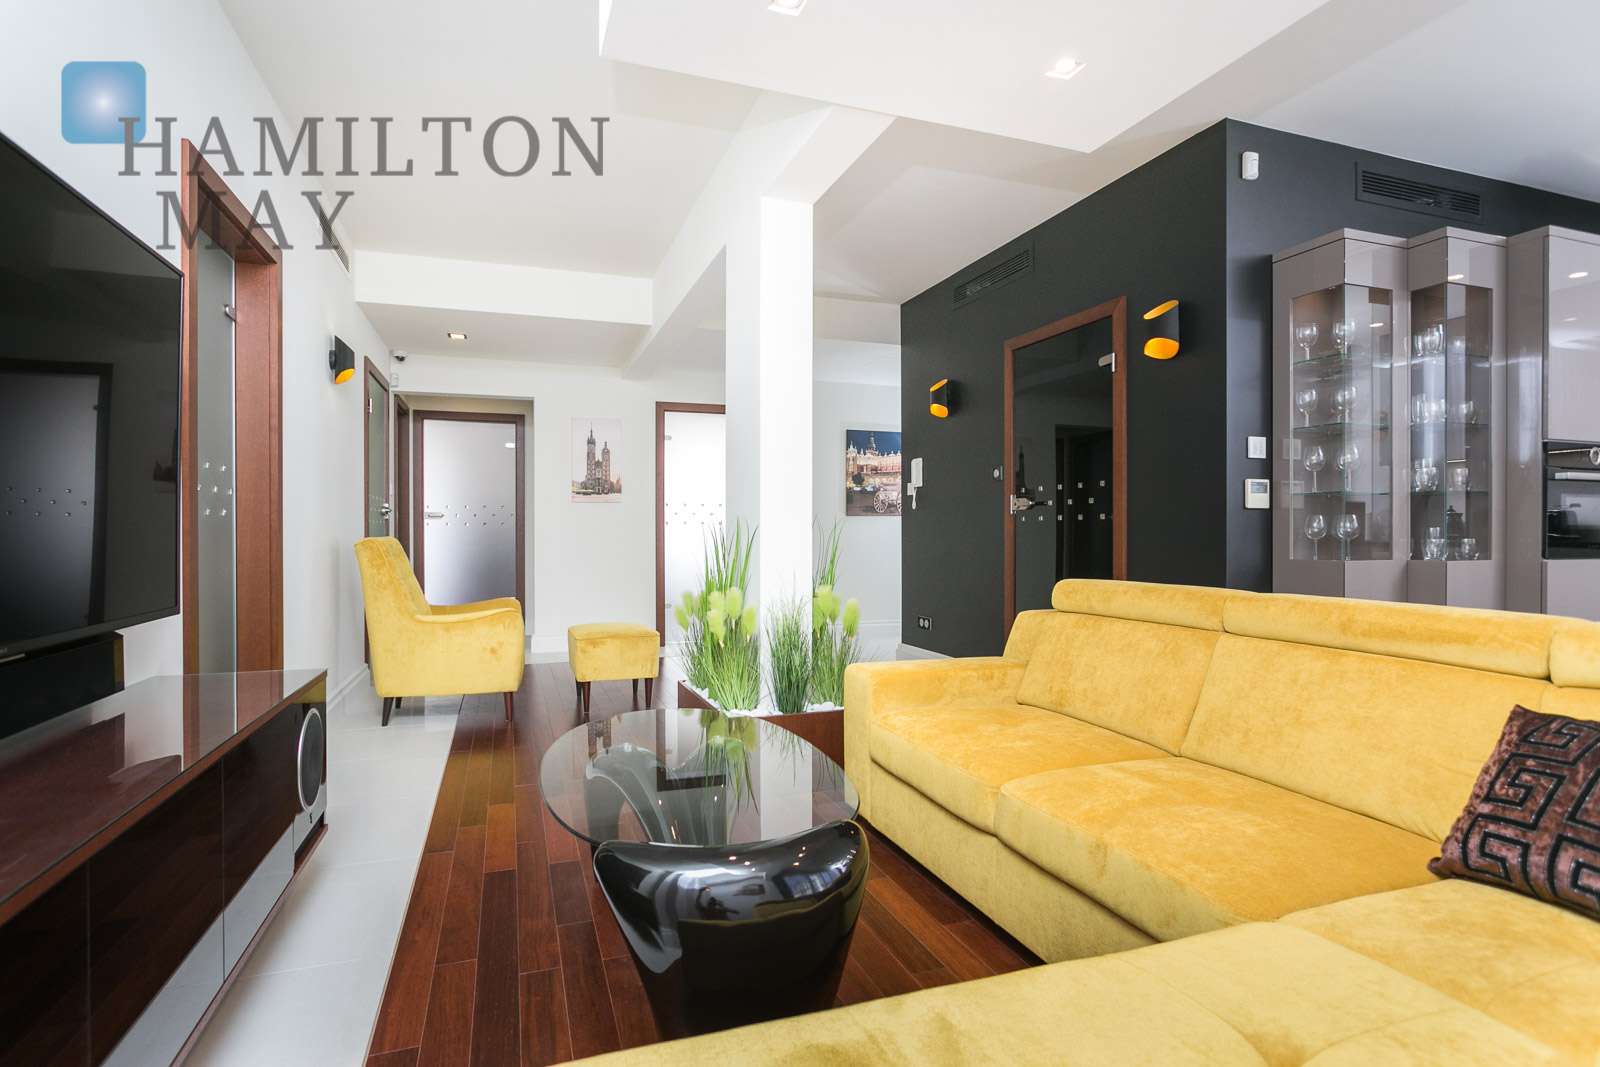 High Standard Brand New 3 Bedroom Apartment With Parking Space In